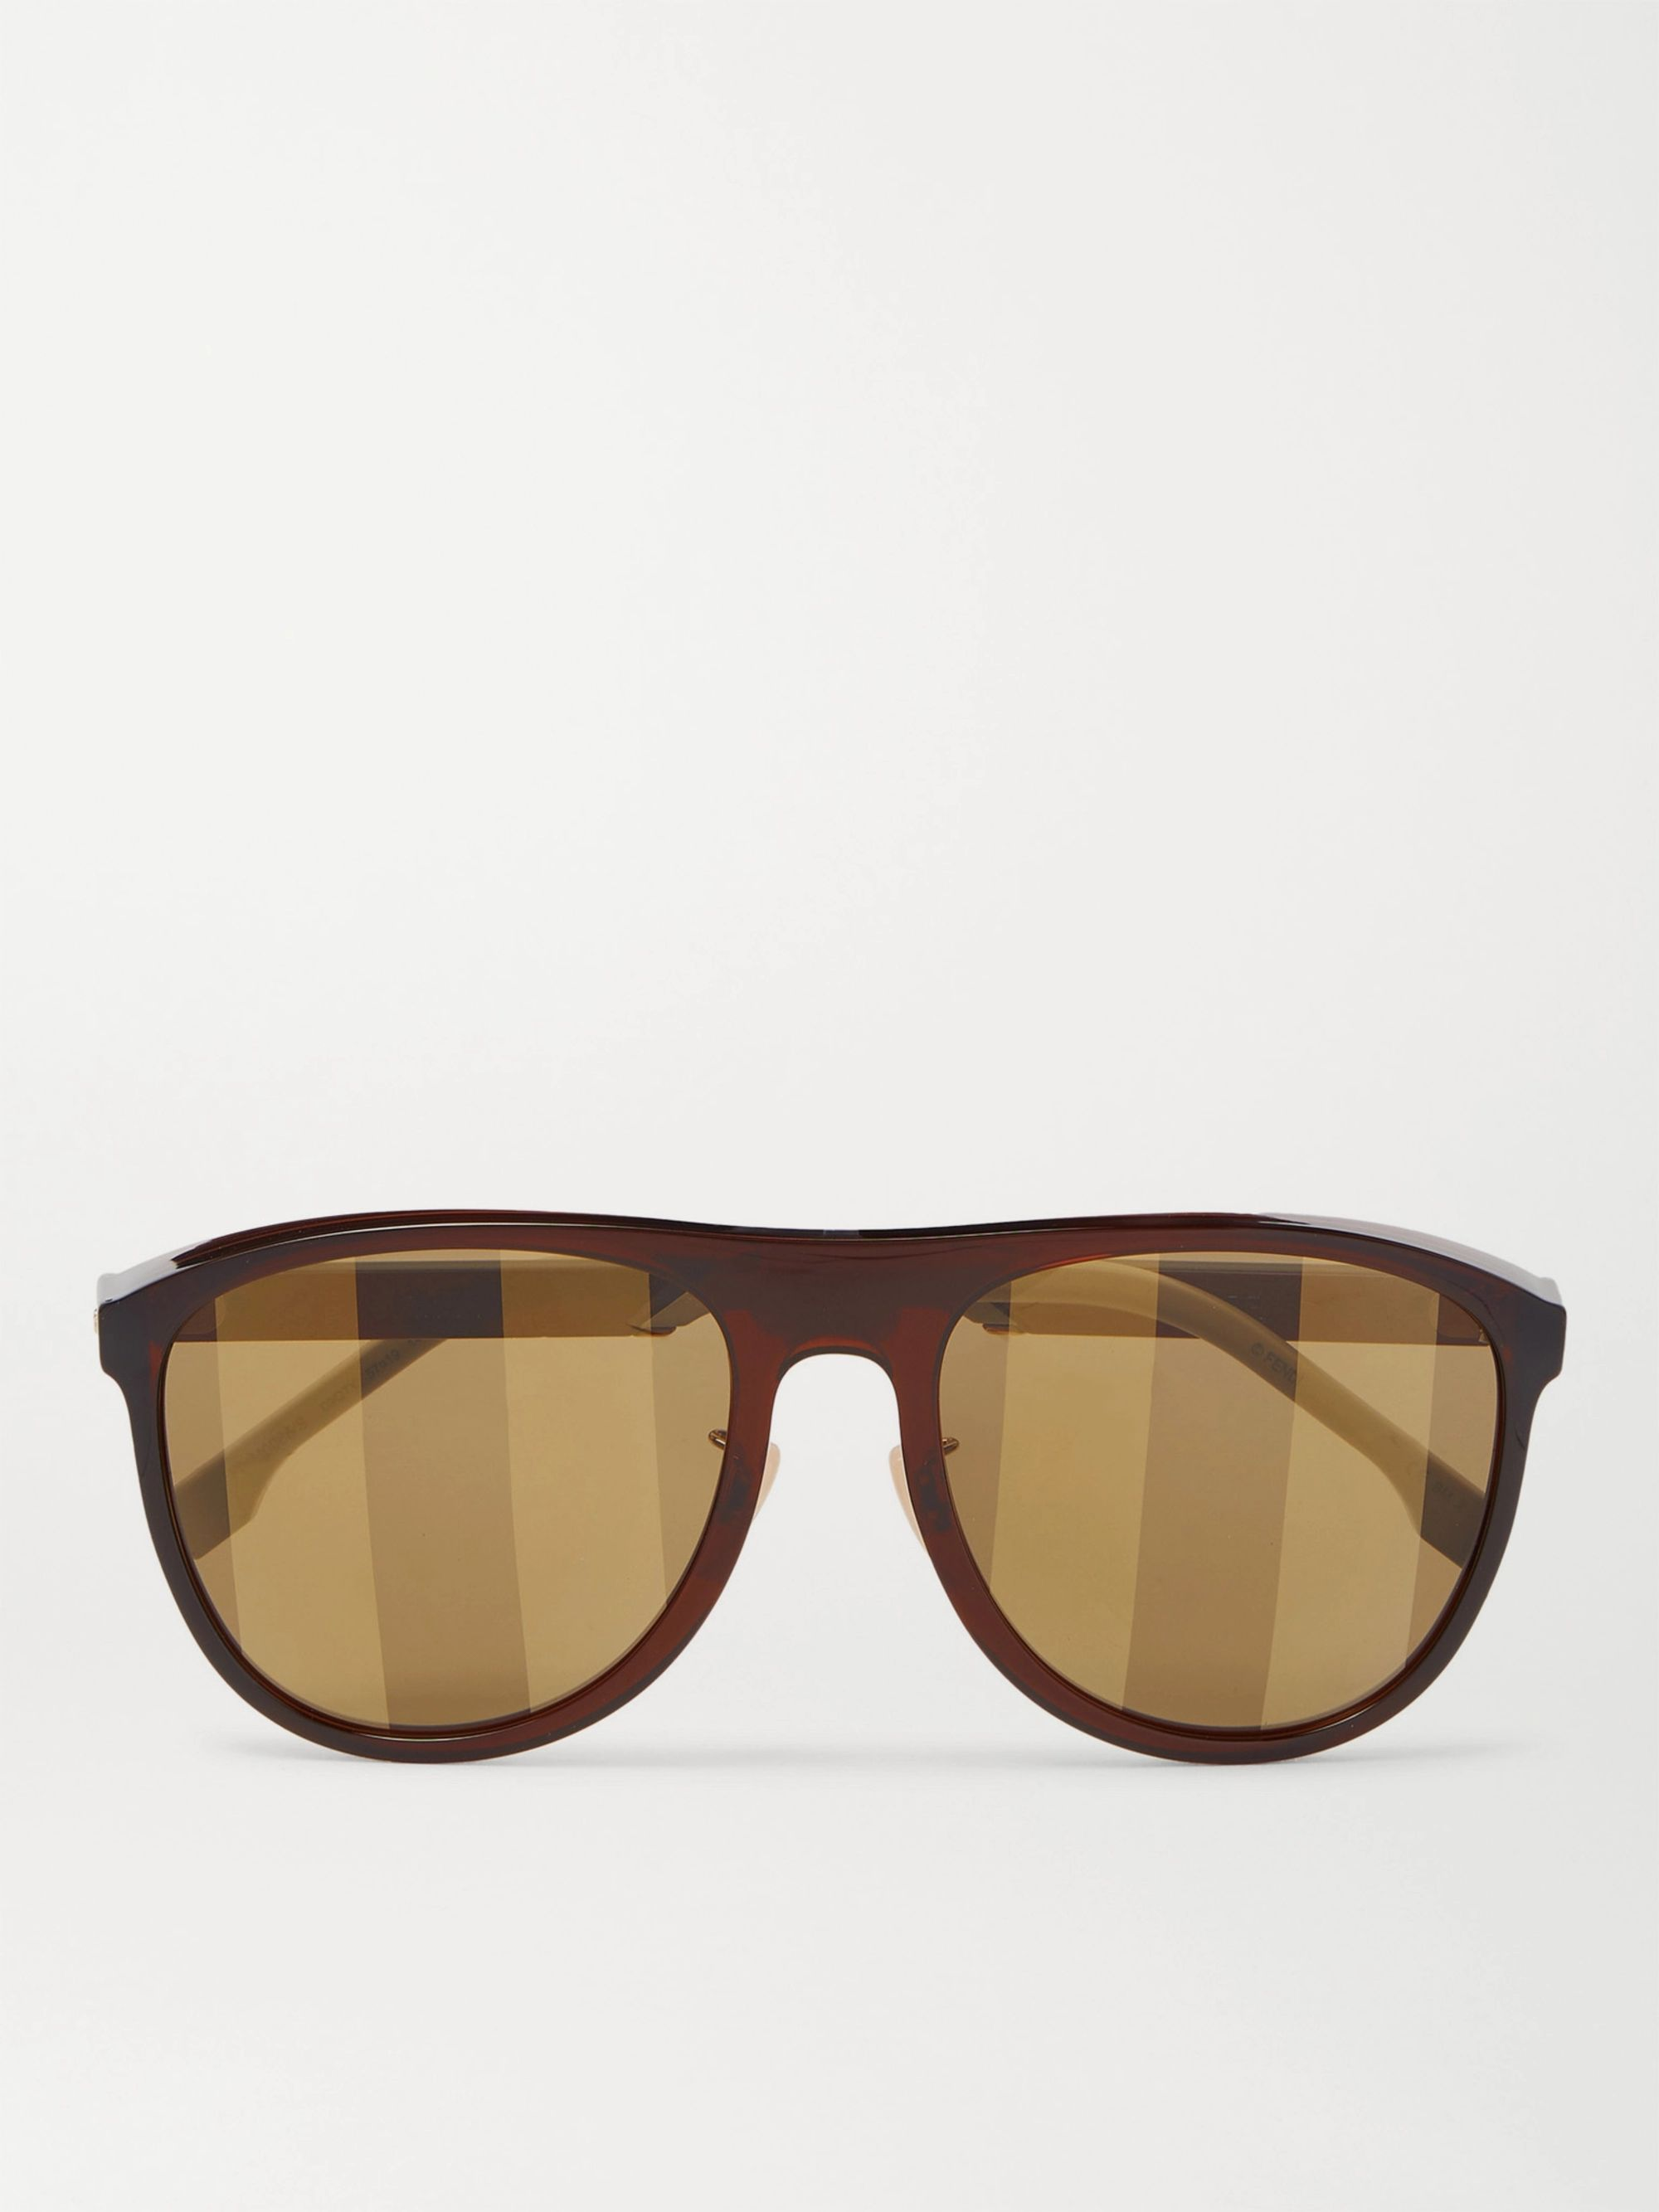 Fendi D-Frame Acetate and Gold-Tone Sunglasses